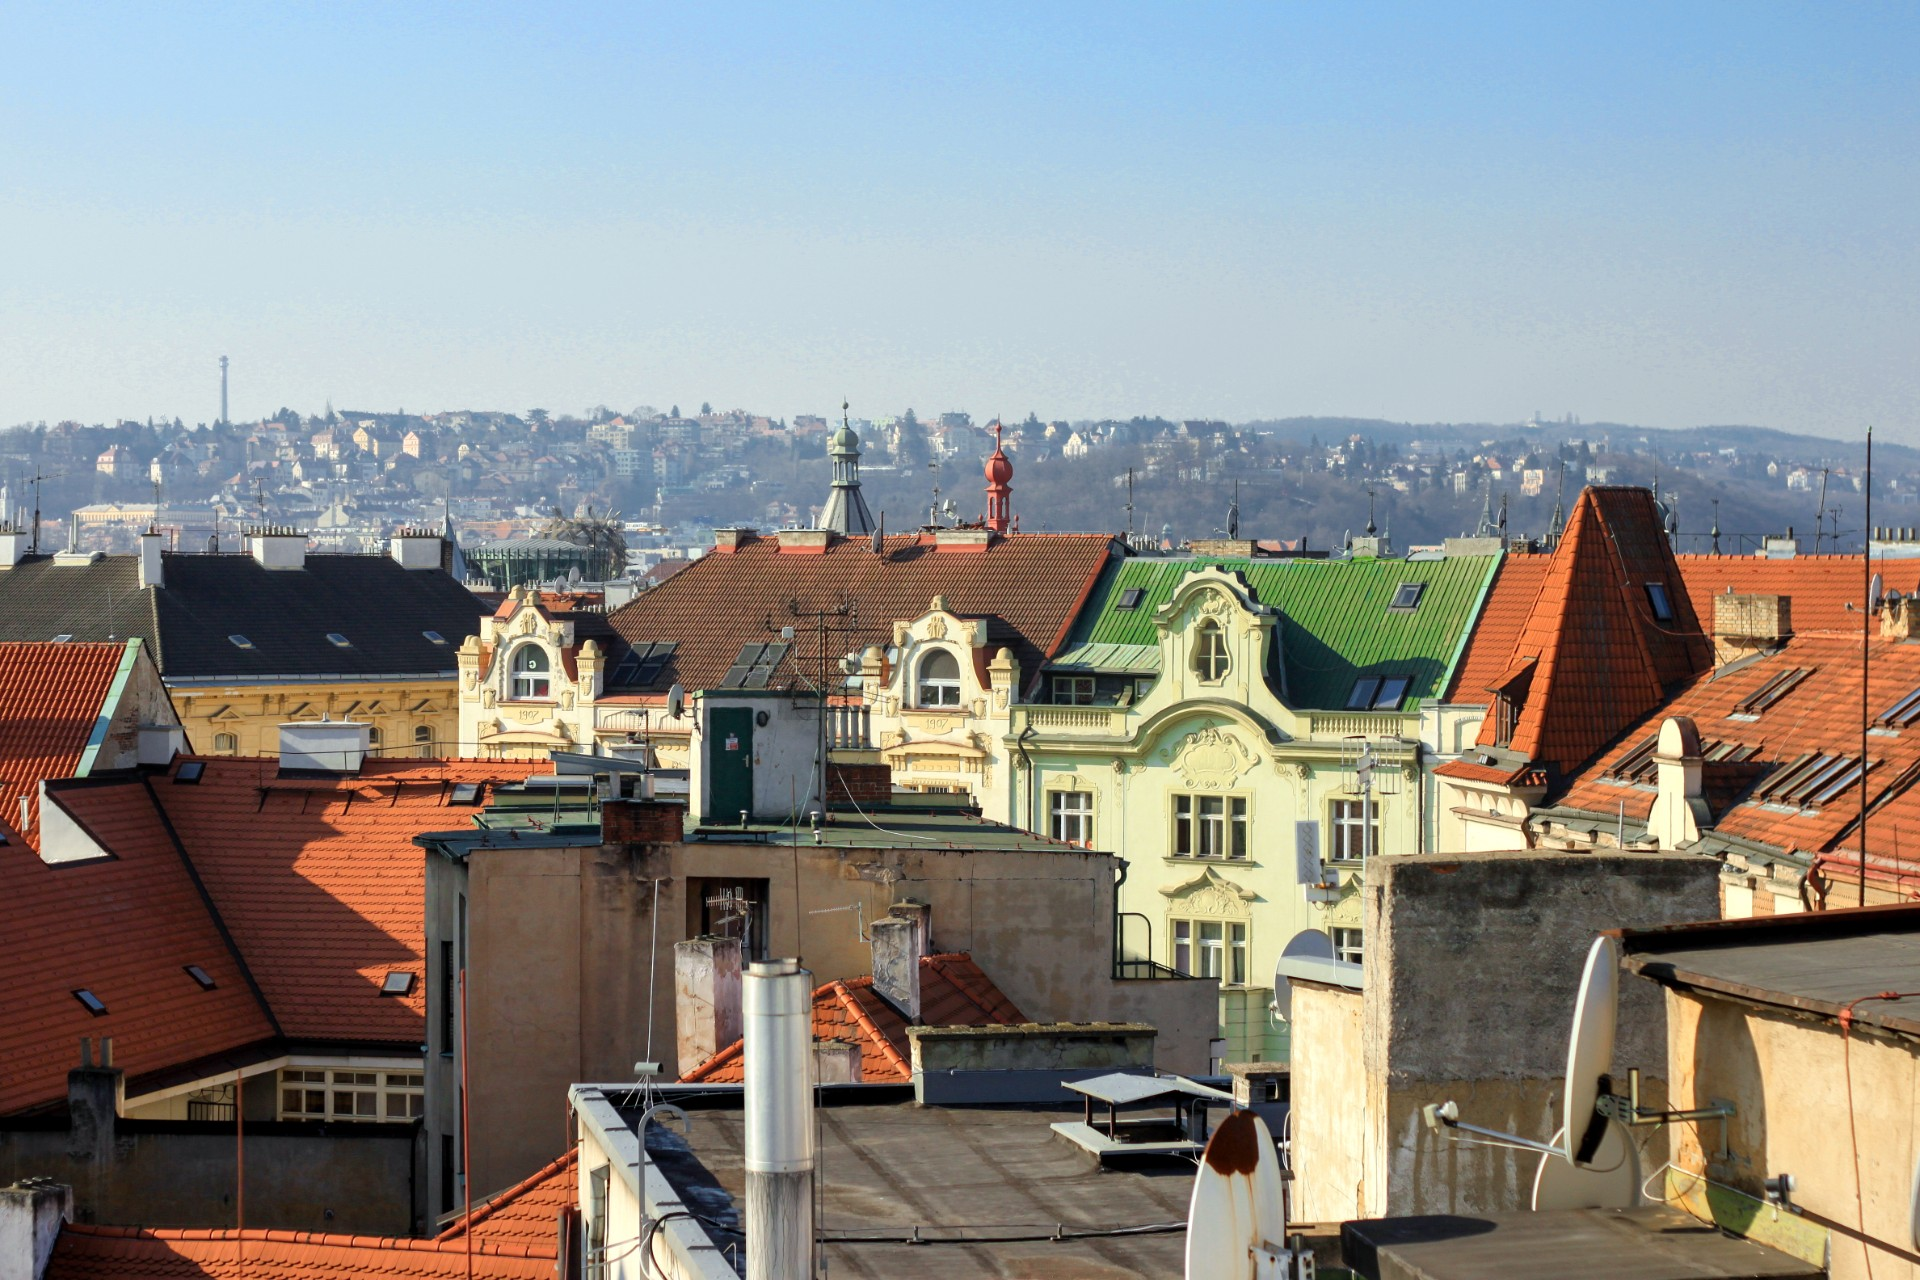 A review of our cheap but luxurious stay at Prague's coolest hostel, Mosaic House. Mosaic House is the Czech Republic's greenest and most sustainable accommodation!